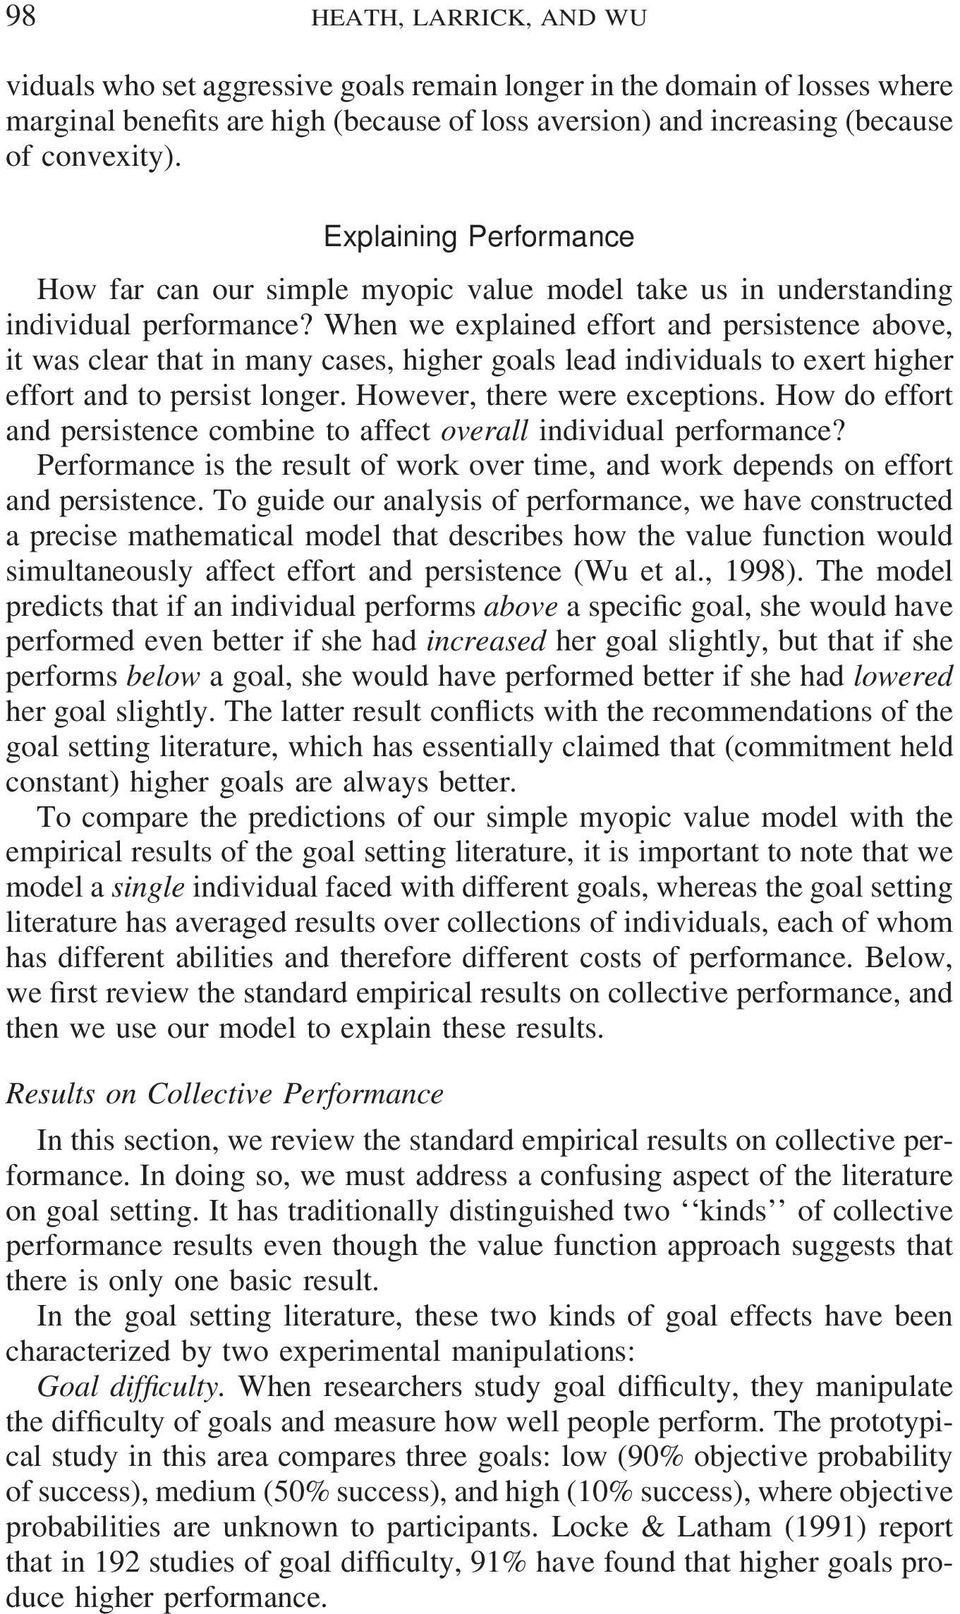 When we explained effort and persistence above, it was clear that in many cases, higher goals lead individuals to exert higher effort and to persist longer. However, there were exceptions.